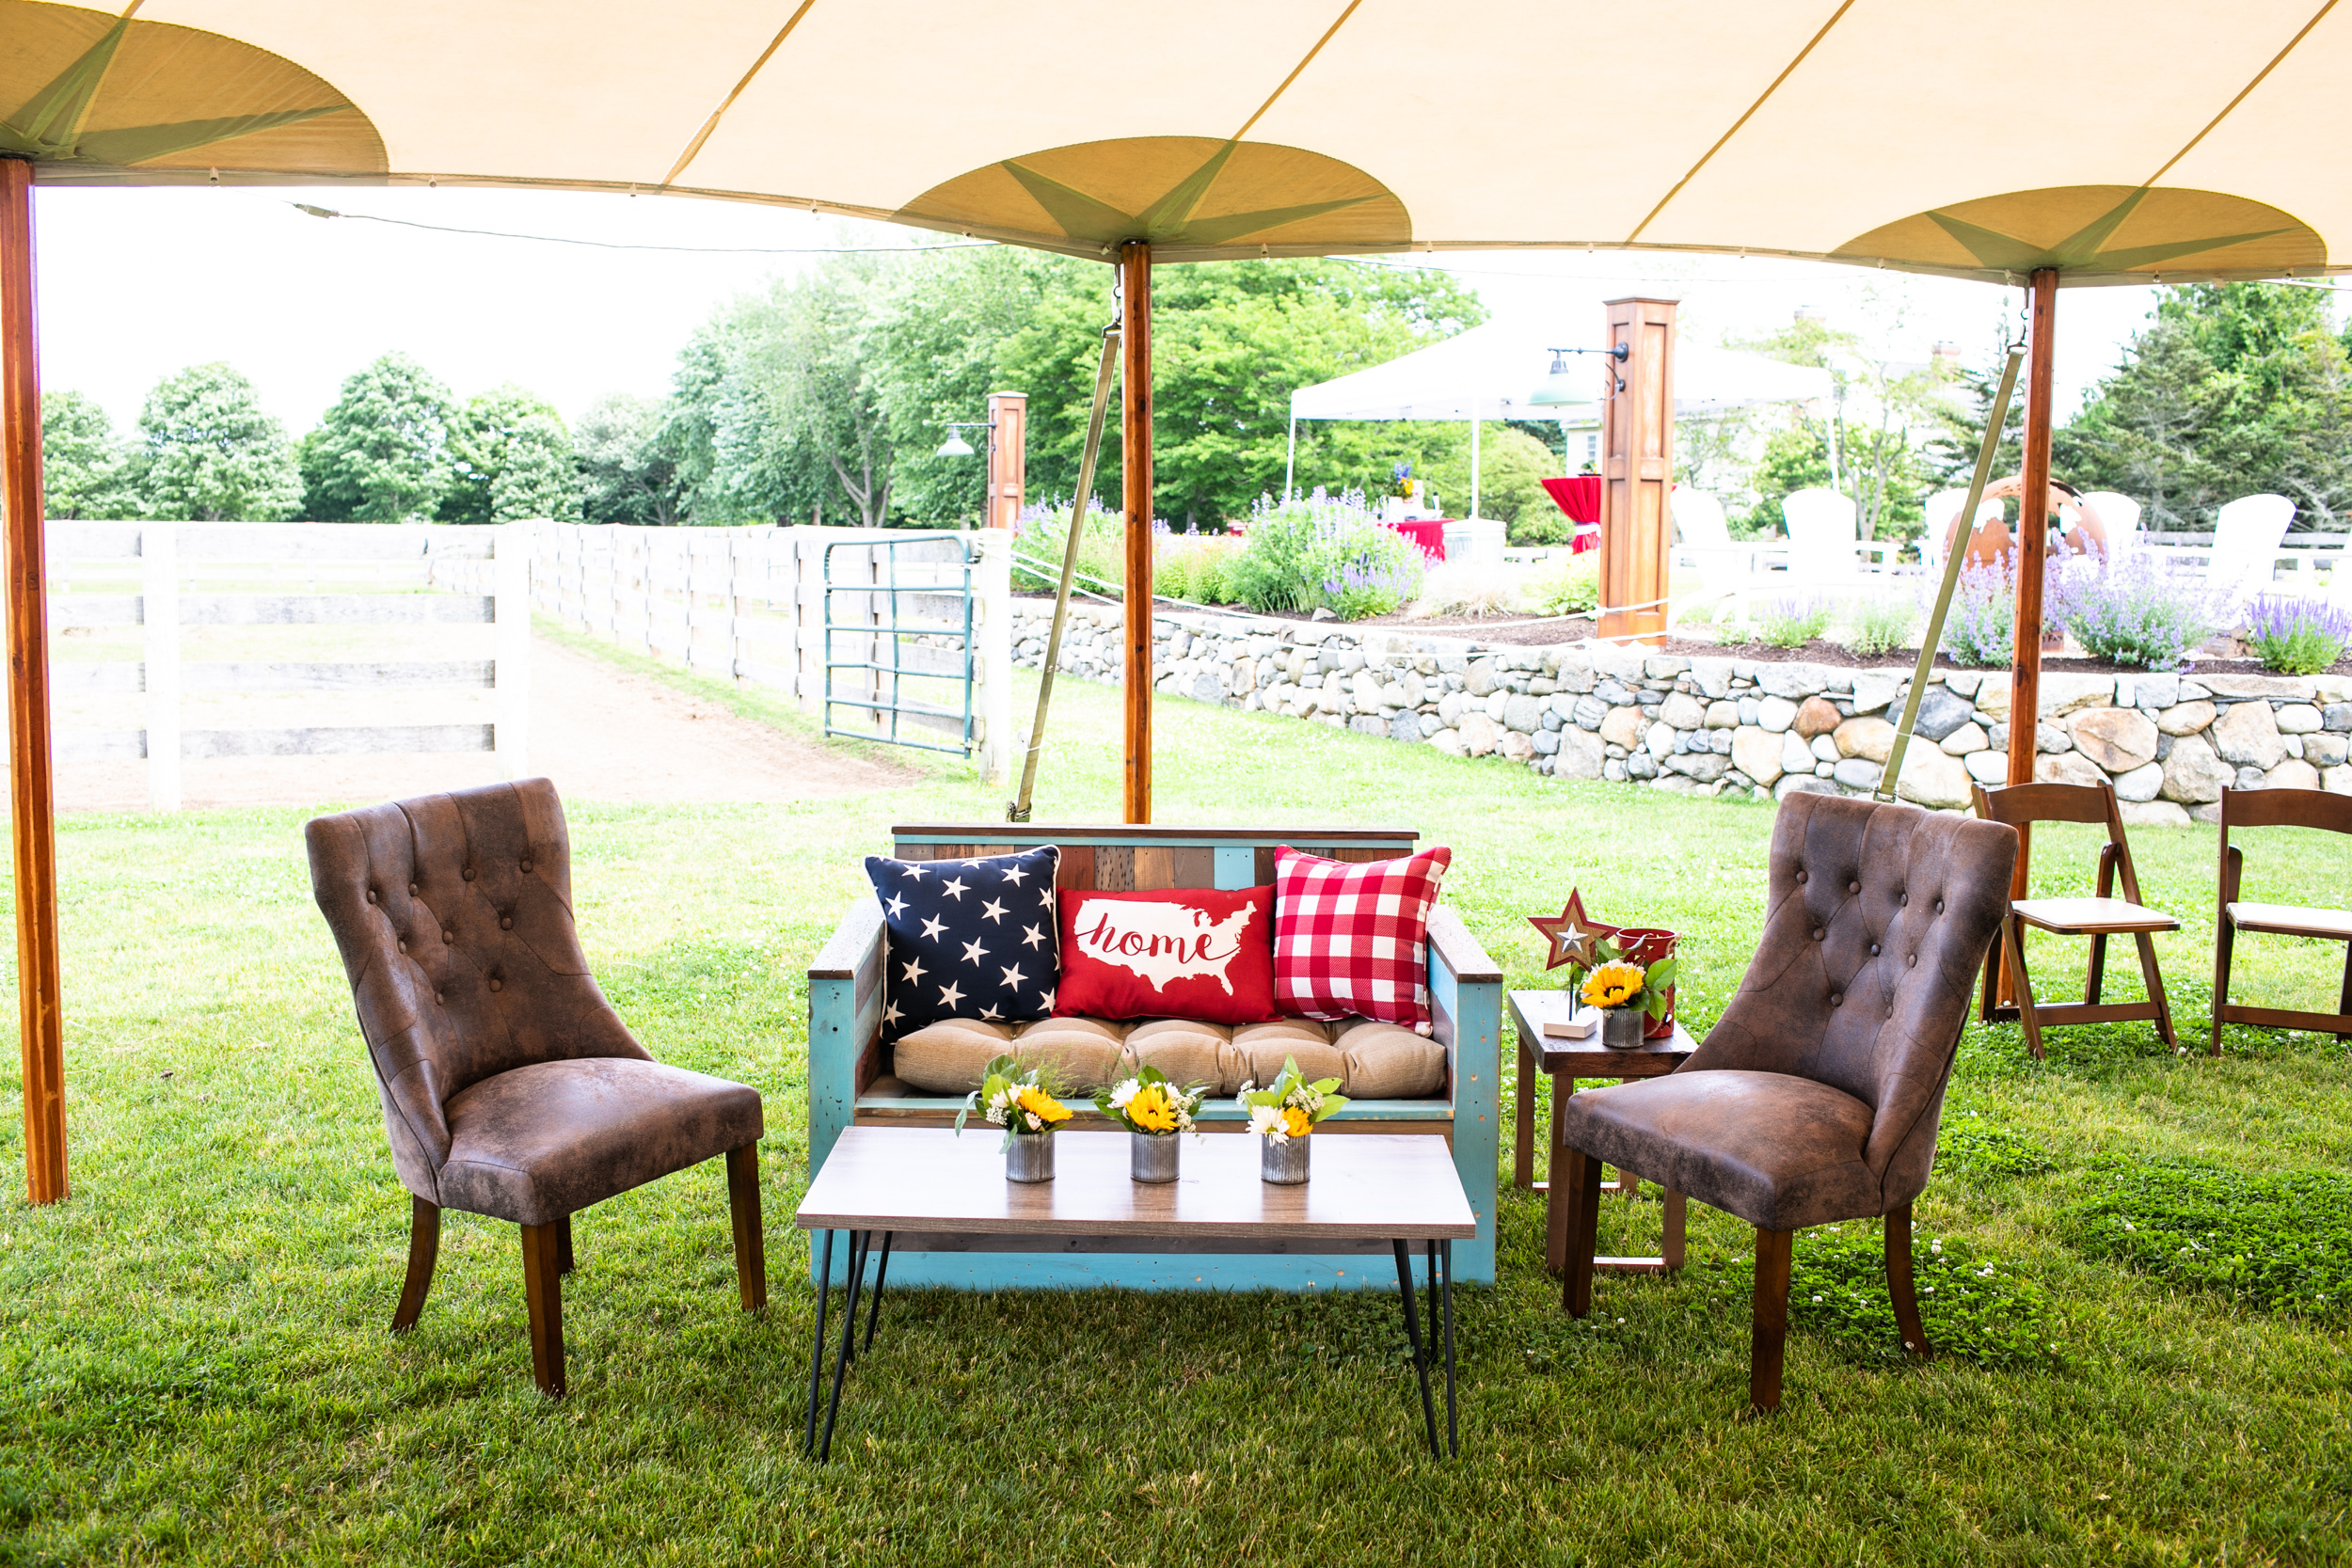 rental_furniture_Malloy_Events_Corporate_Production_Function_Rustic_design_decor_furnishing